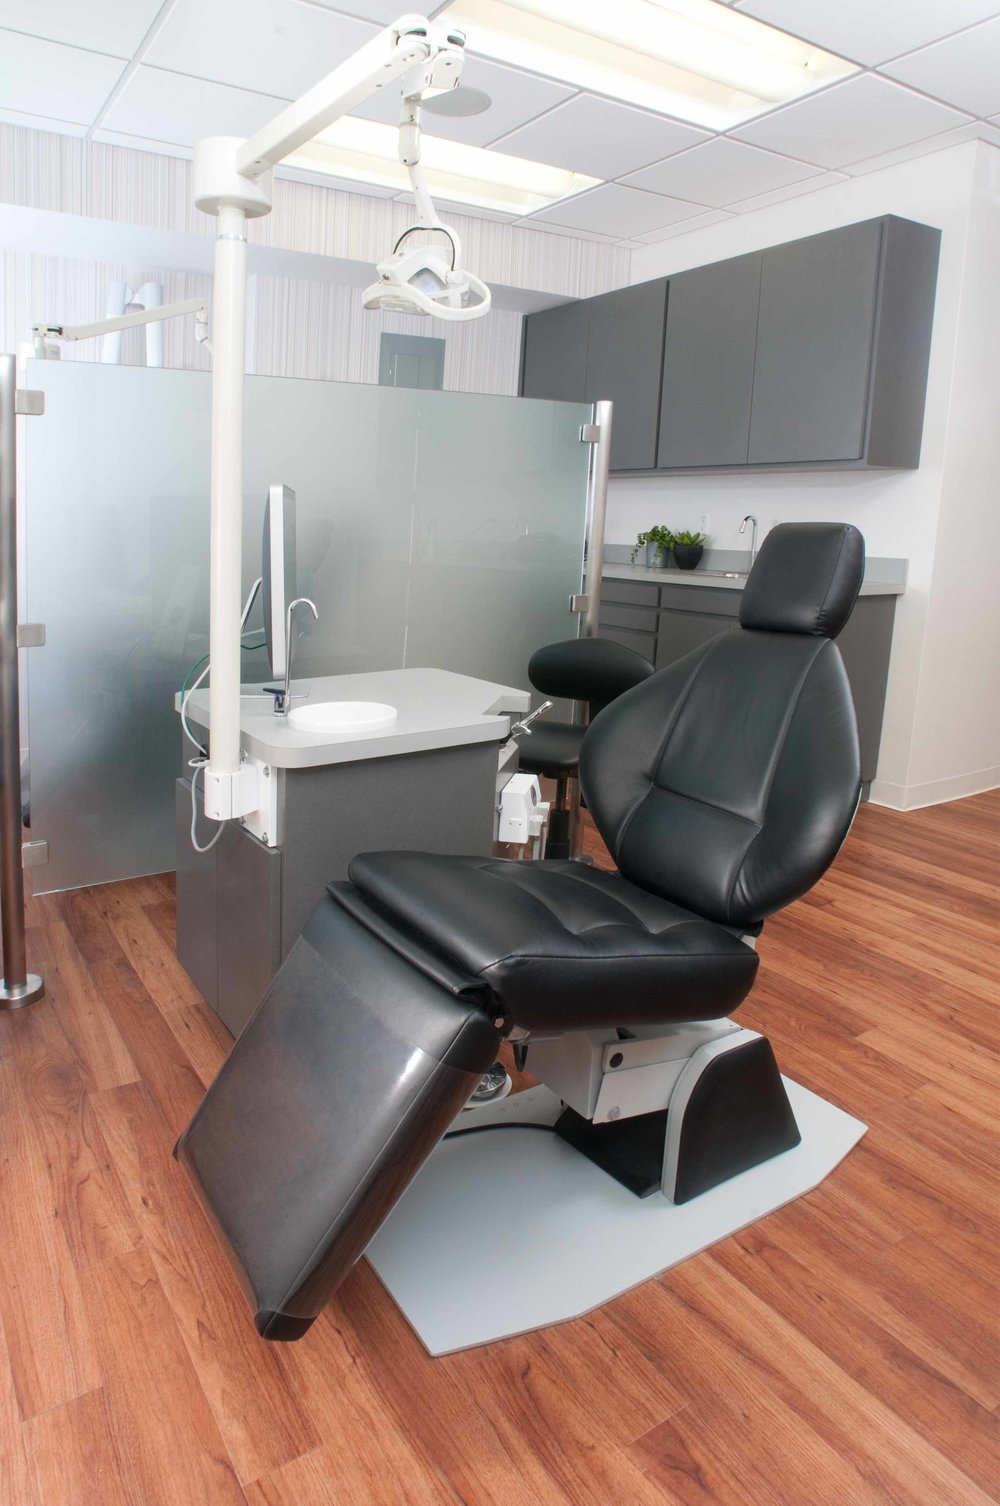 DSC_2357_Single_Dental_Station.jpg